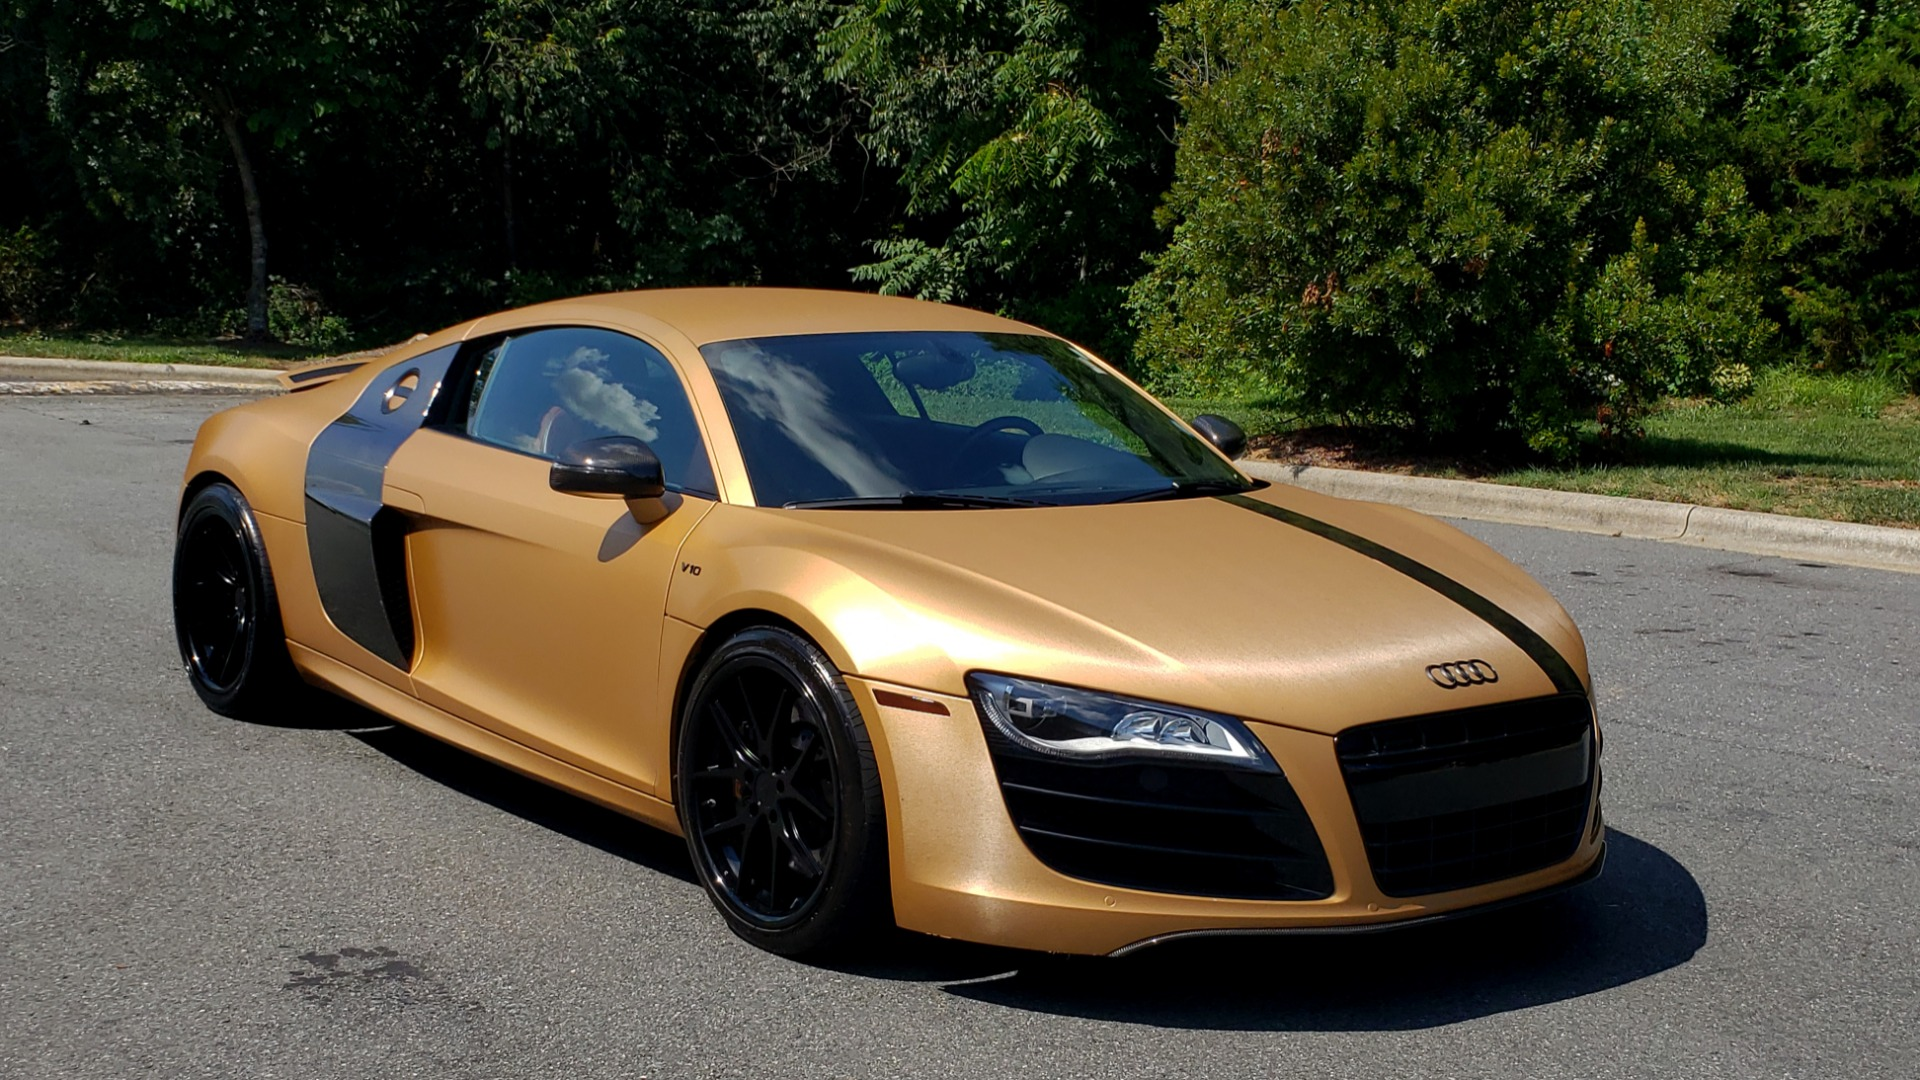 Used 2012 Audi R8 V10 5.2L / CUST WRAP BRUSHED BRONZE / NAV / B&O SOUND / CUST 19IN WHLS for sale $79,999 at Formula Imports in Charlotte NC 28227 10